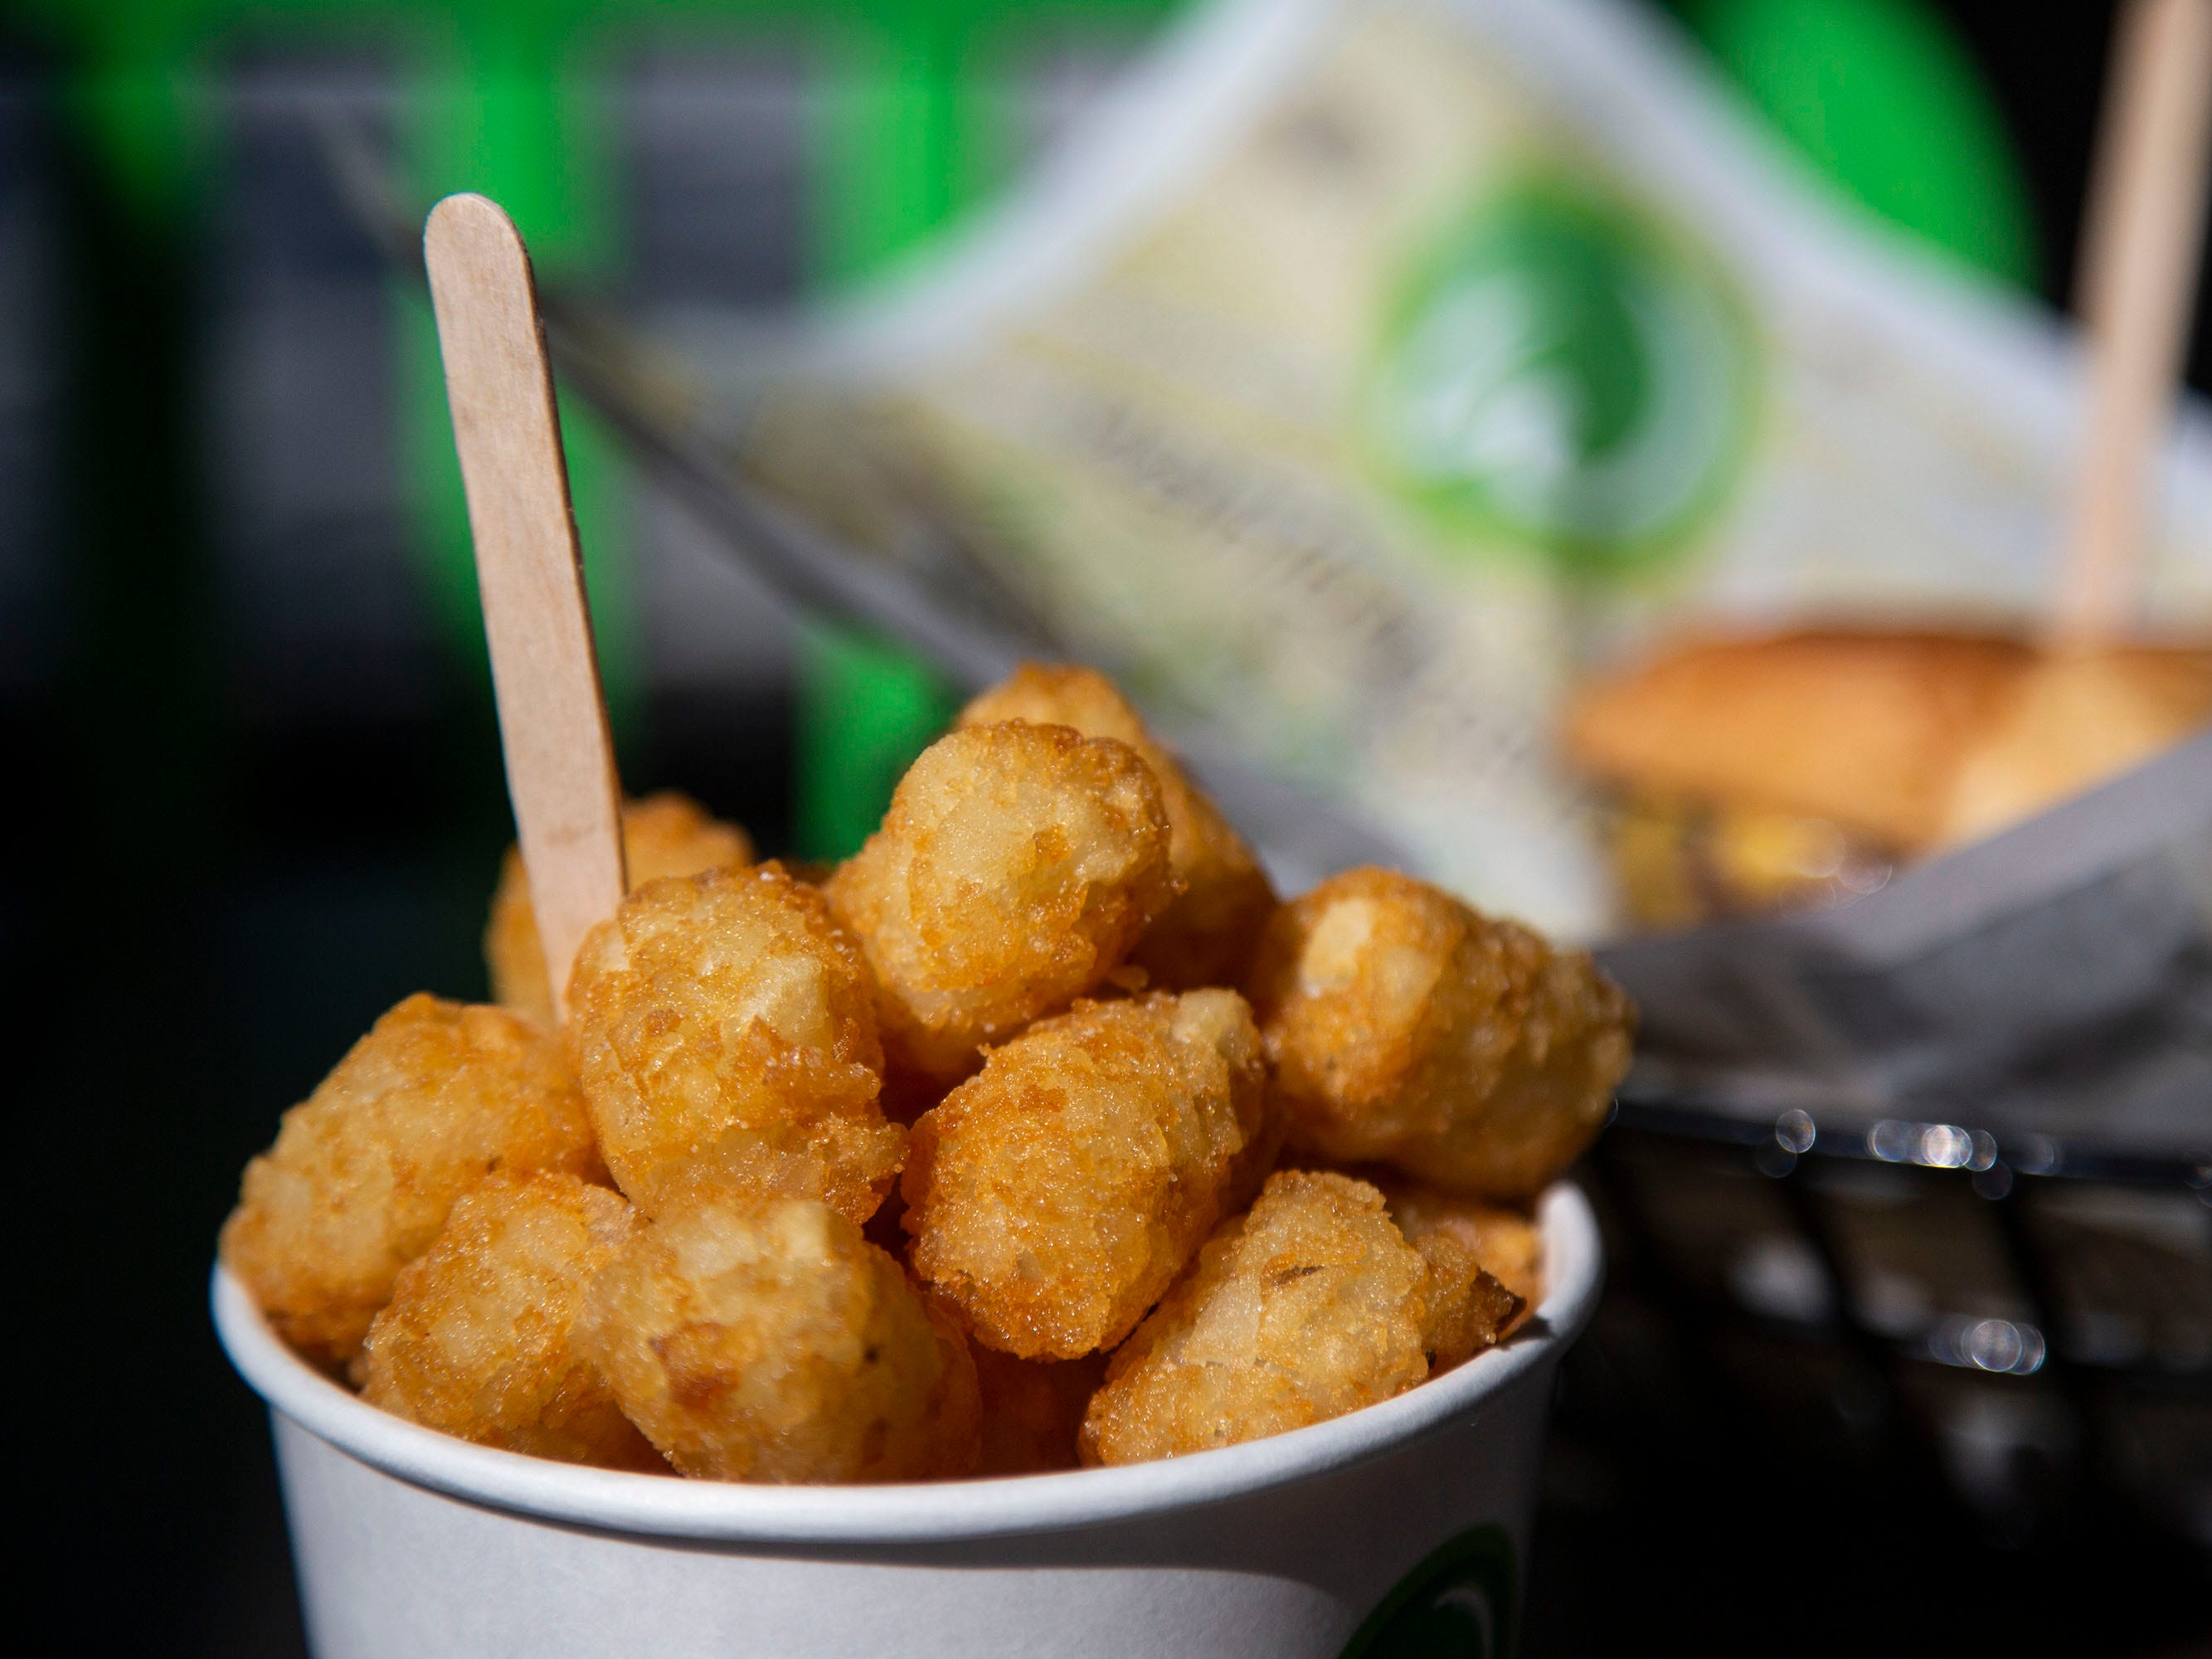 Wahlburgers tater tots are served along side a burger the day before the restaurant's opening on Monday, Sept. 10, 2018, in the Jordan Creek Town Center in West Des Moines. The restaurant, created by actor Mark Wahlberg and his brothers, will open on on Sept. 11.